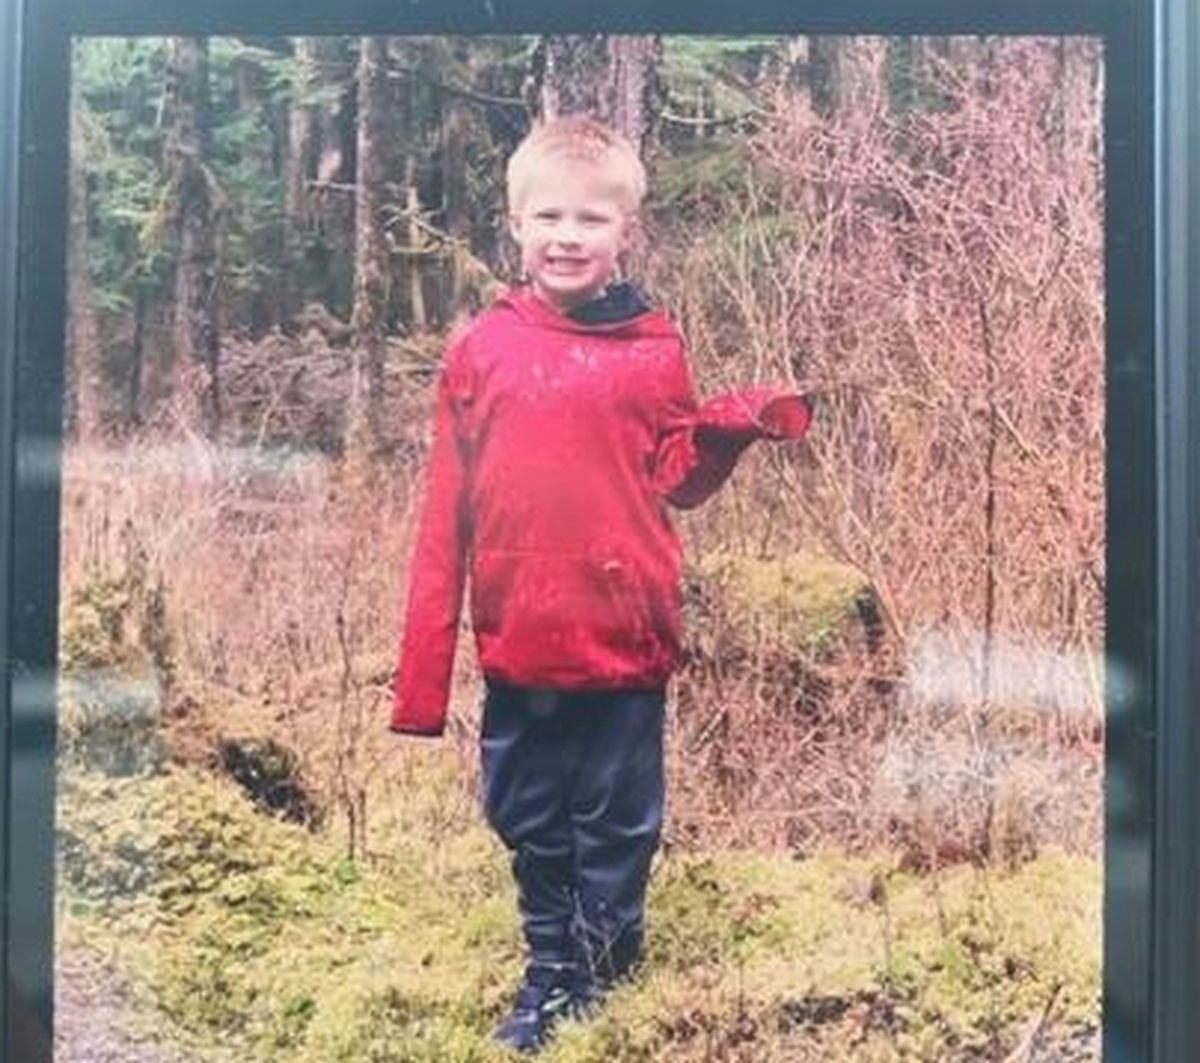 Searchers find body of 5-year-old Ketchikan boy missing after hike went awry, troopers say